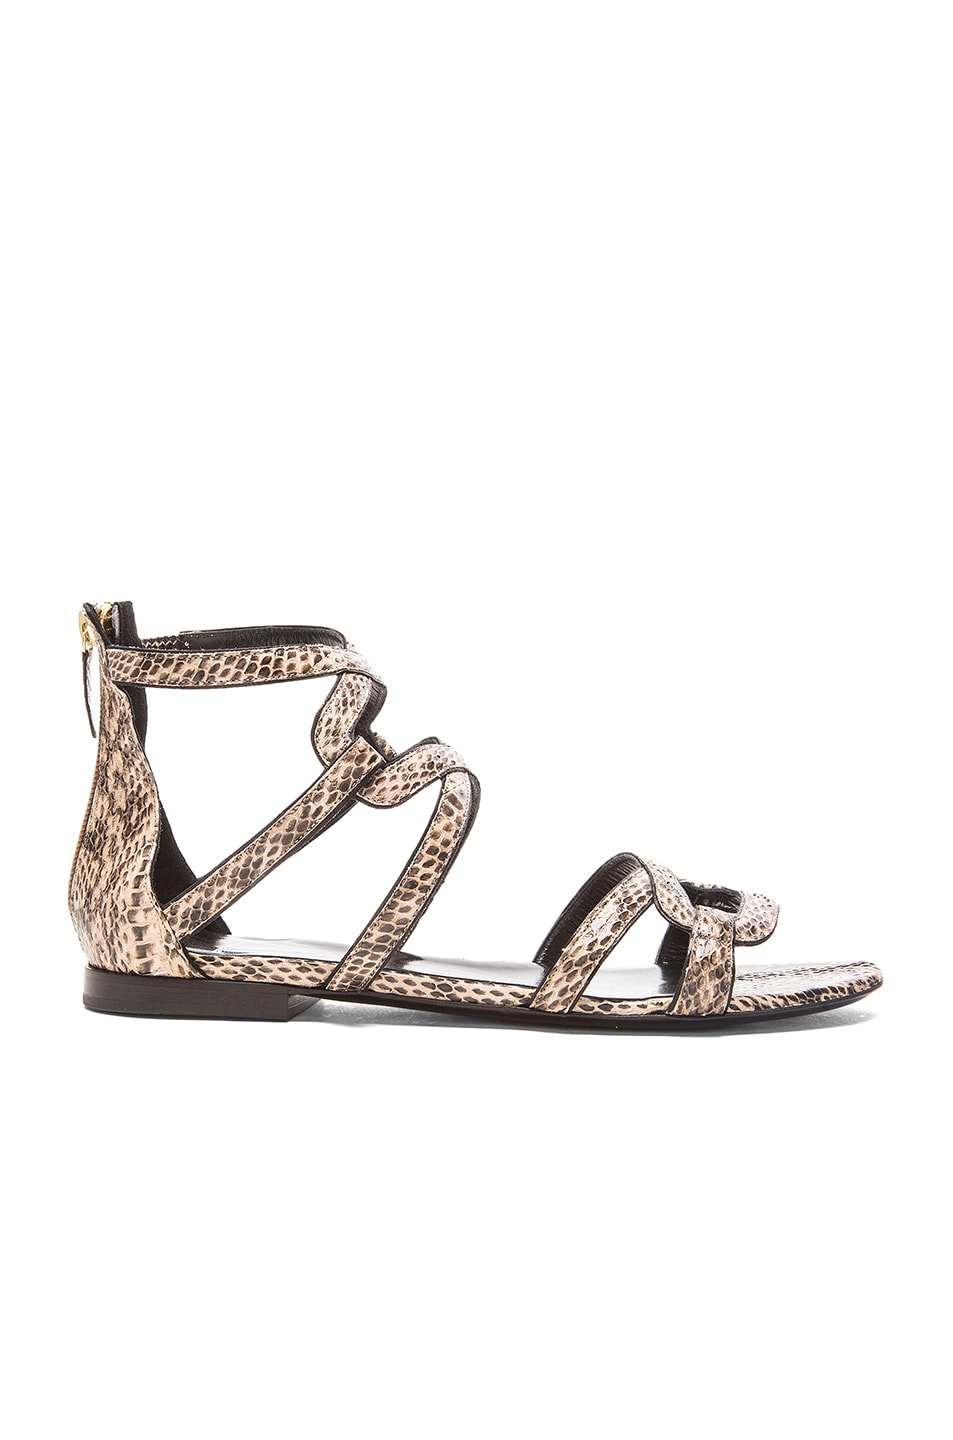 Image 1 of Pierre Hardy Kaliste Sandal in Black & Nude